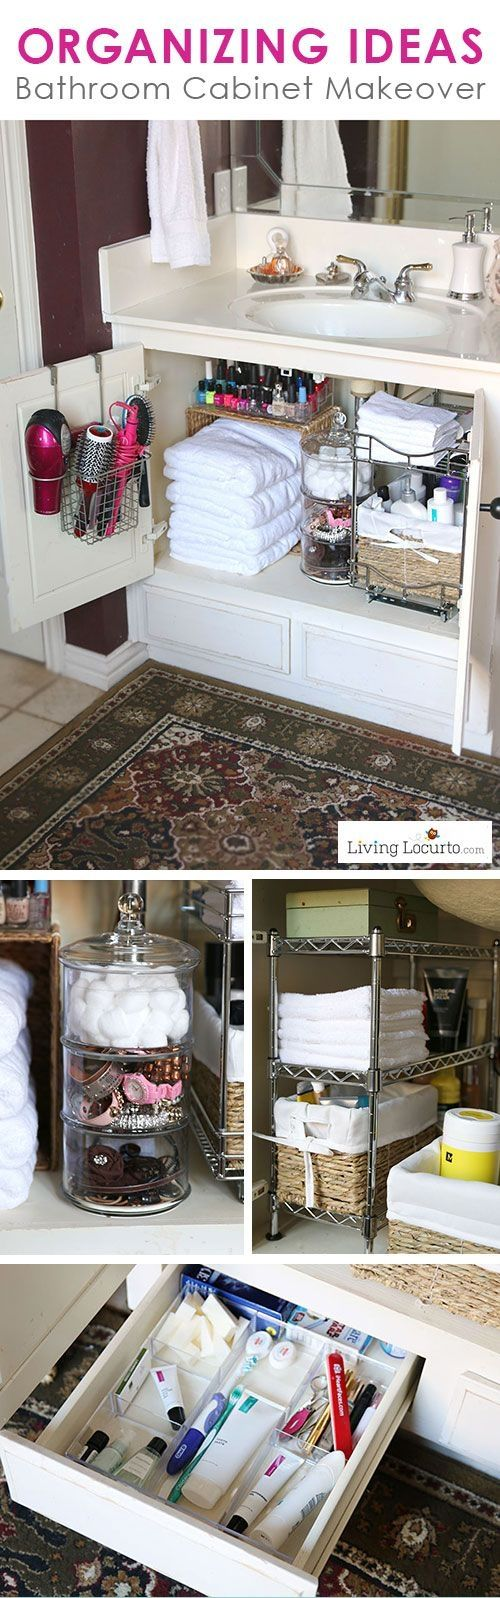 My bathroom is probably not big enough for this new organization!! But if my bathroom was bigger, I would totally do this!